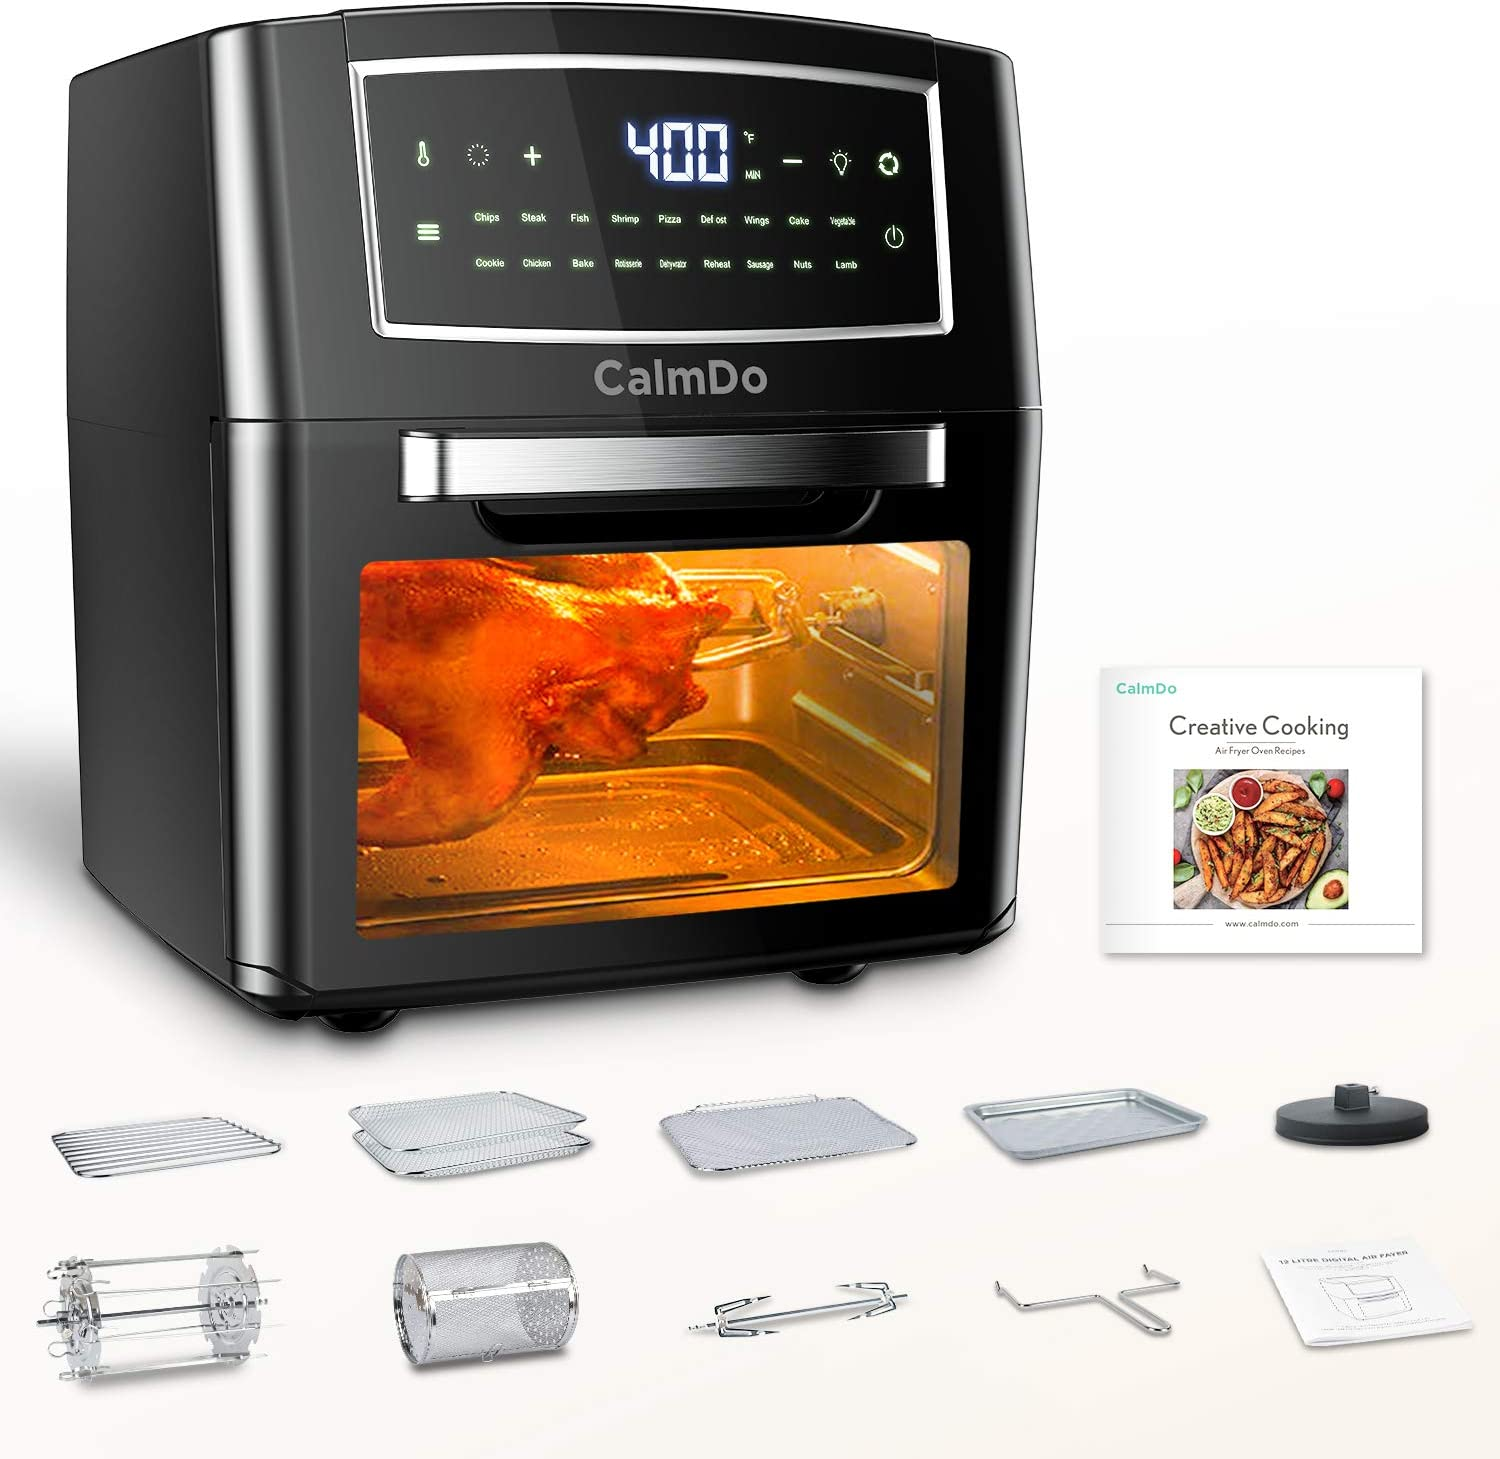 CalmDo Air Fryer Toaster Oven 12.7 Quarts, Rotisserie, Dehydrator, Convection Oven, 18 functions to Fry, Roast, Dehydrate, Bake, Reheat, 10 Accessories & Recipe Included, Black